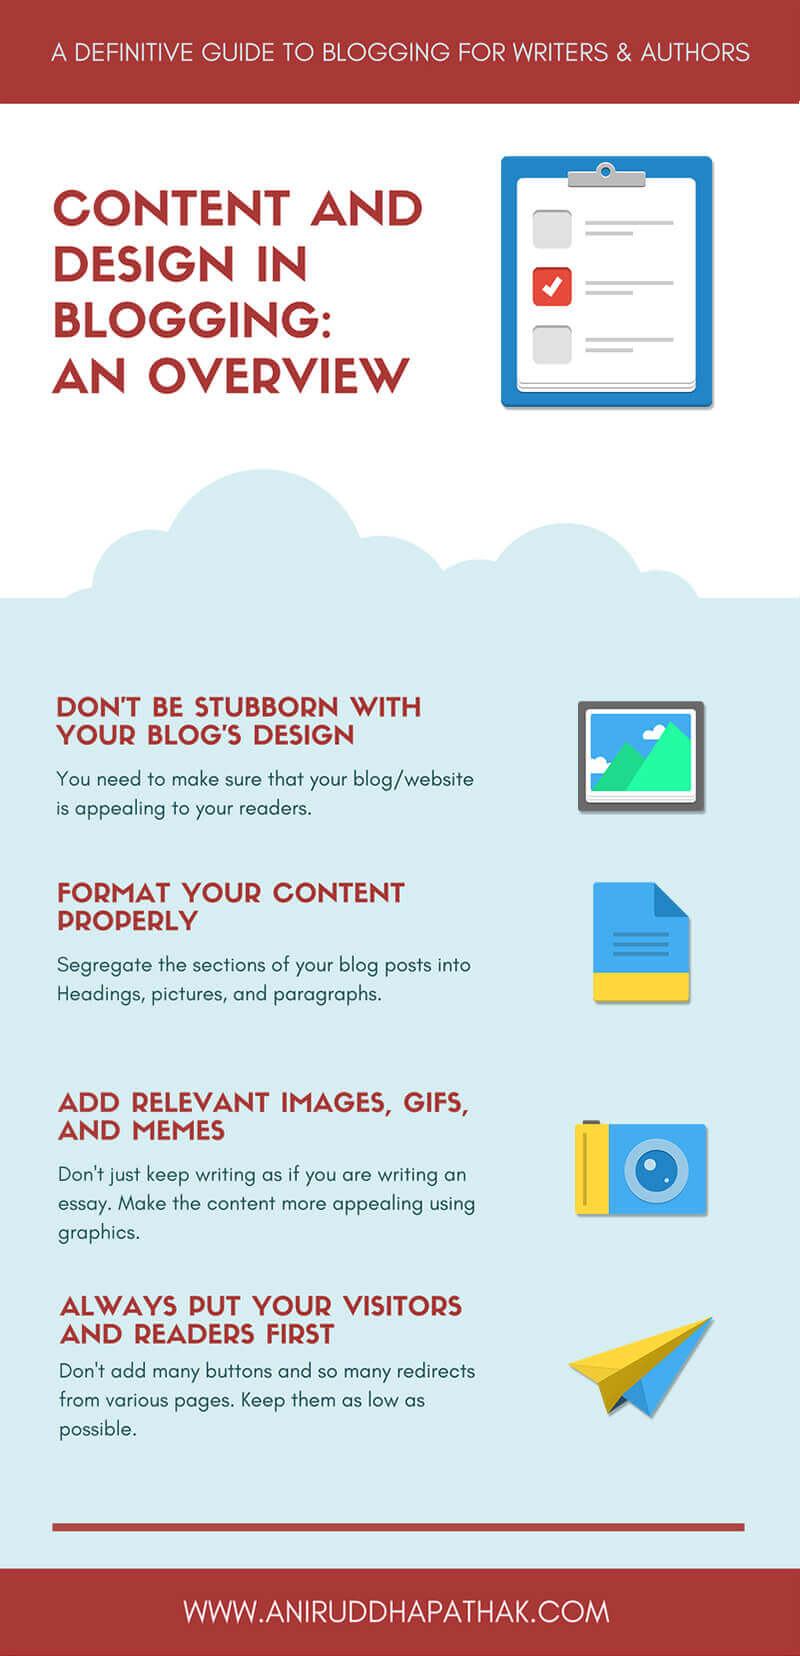 Content and Blogging Overview Infographic- Aniruddha Pathak